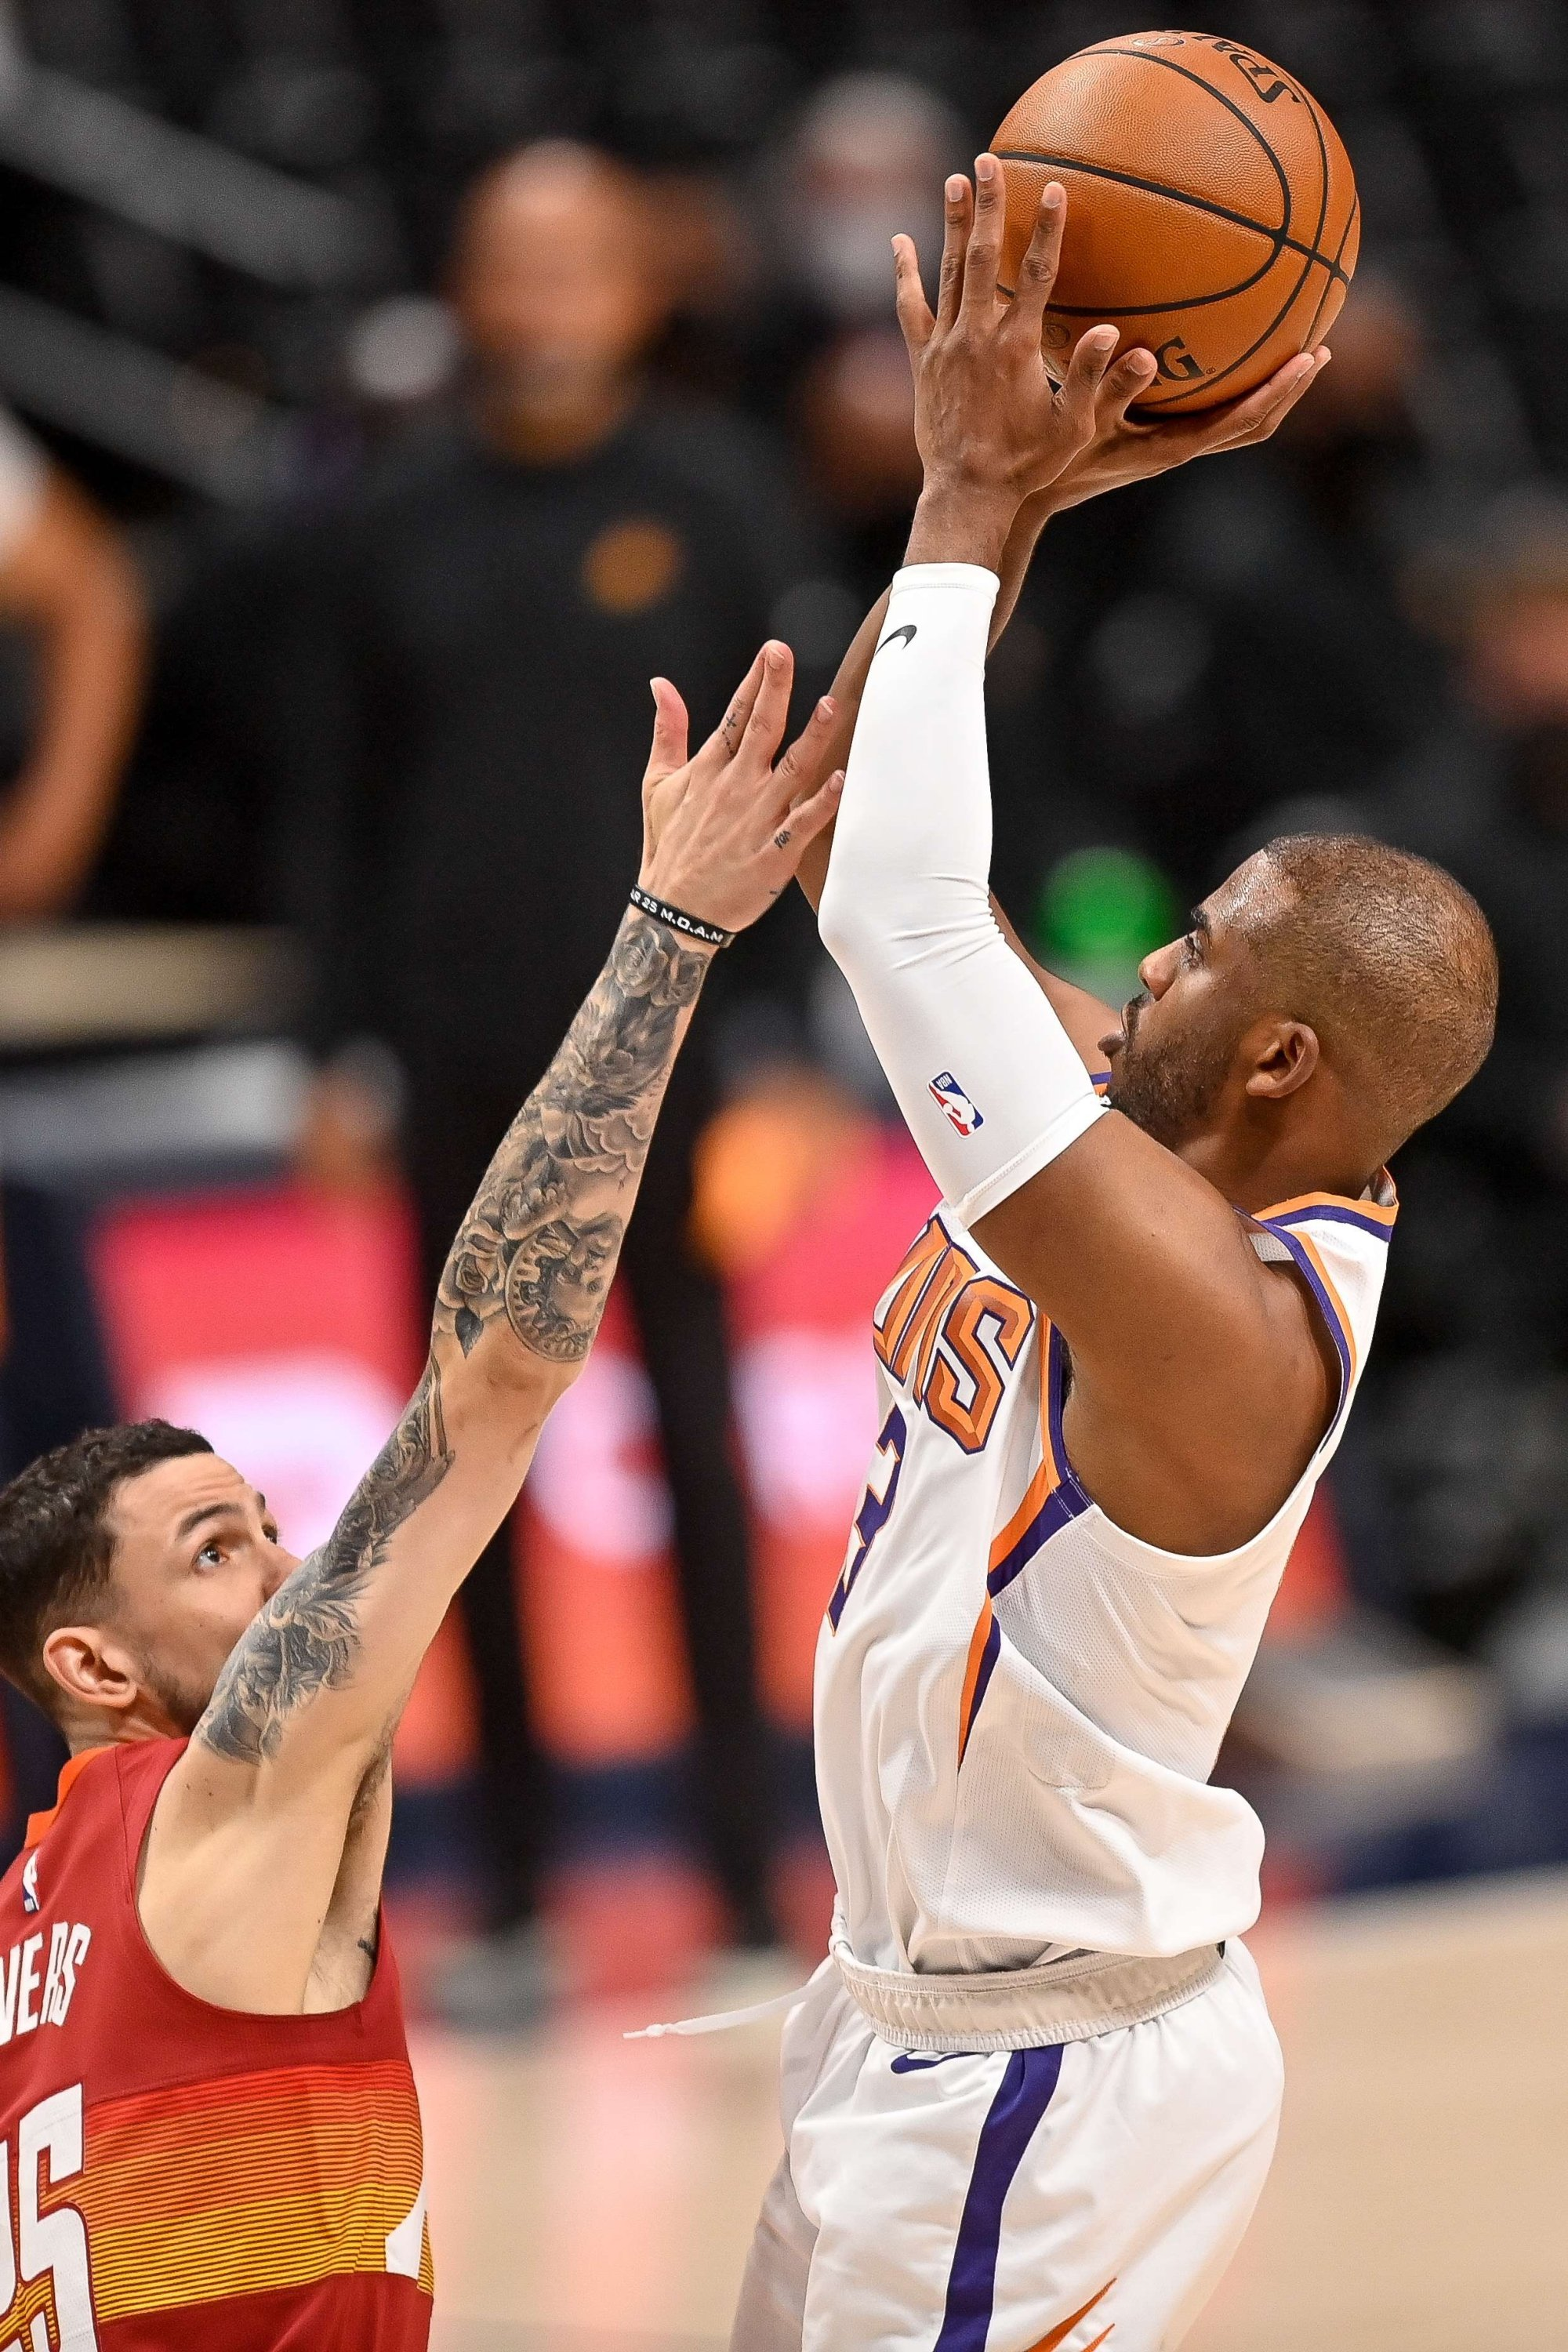 Phoenix Suns' Chris Paul (R) shoots over Denver Nuggets' Austin Rivers (L) in Game 4 of the Western Conference second-round playoff series at Ball Arena Denver, Colorado, U.S., June 13, 2021. (AFP Photo)